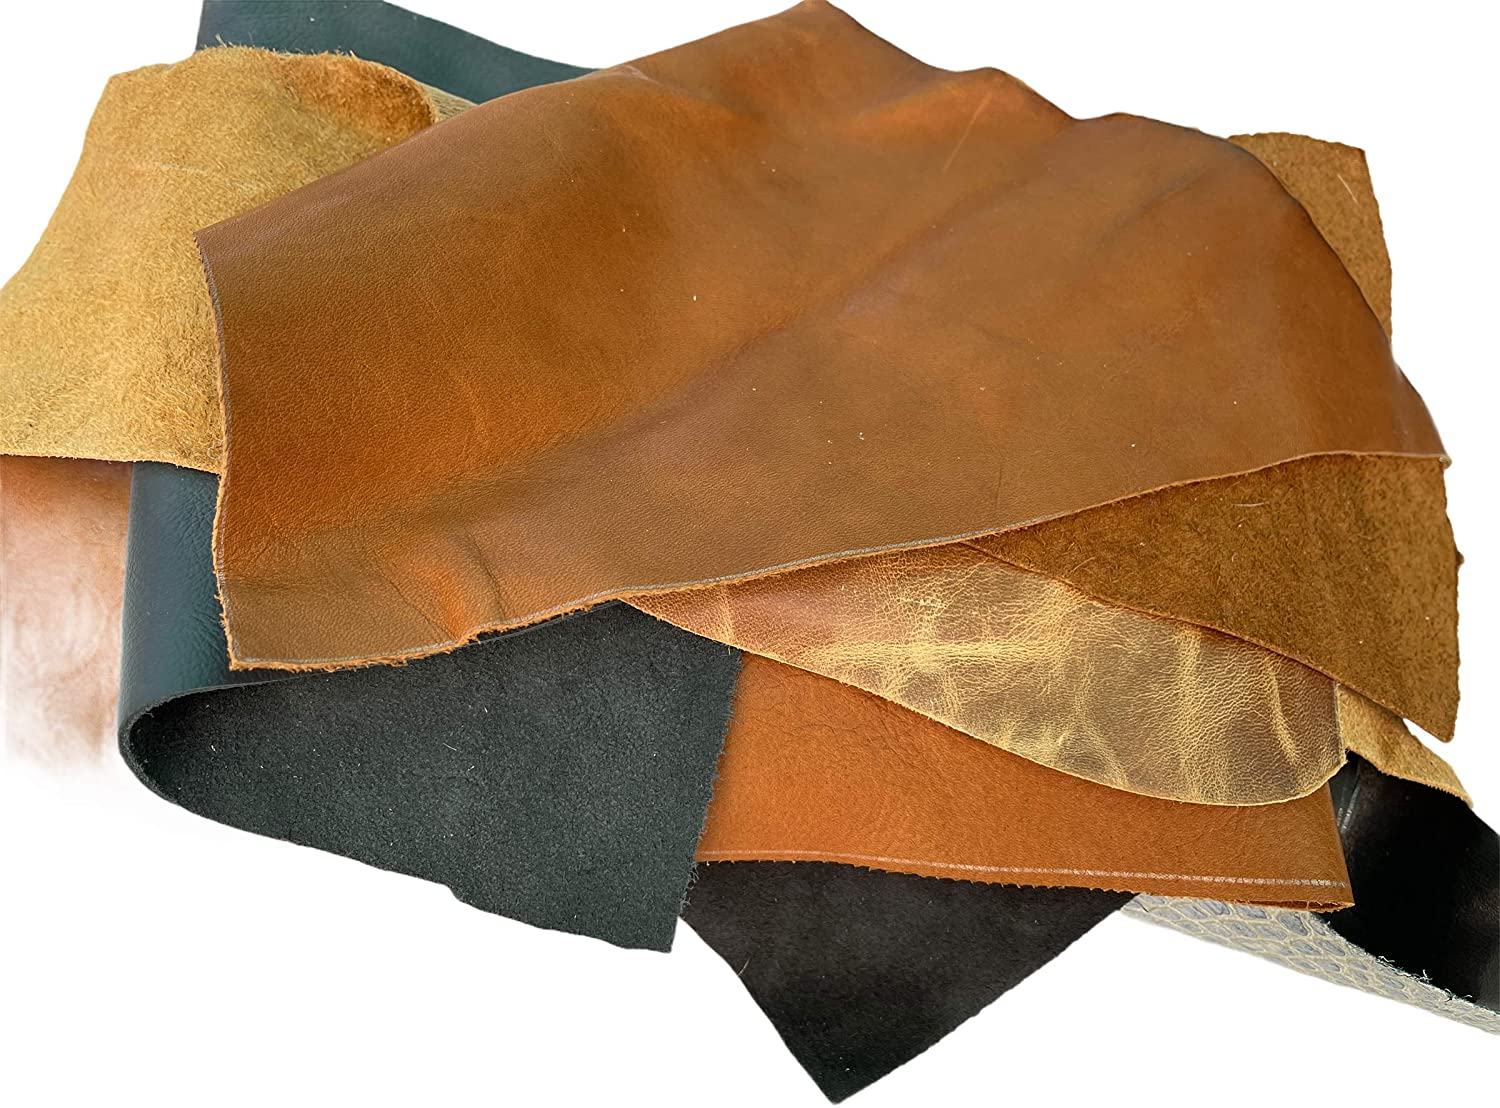 Piece of golden cowhide leather grained leather